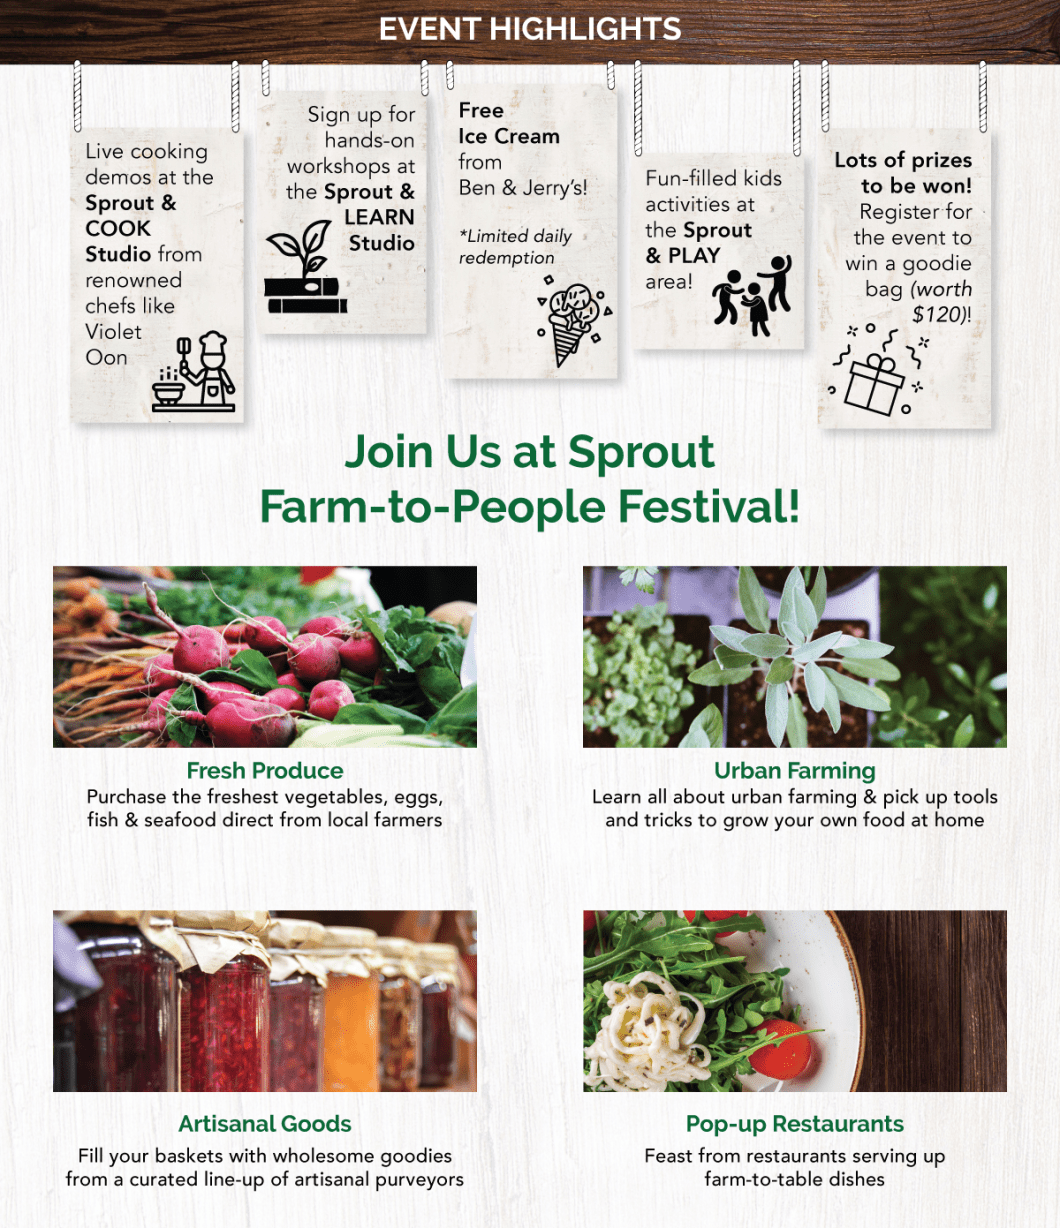 Event Highlights - Join Us at Sprout Farm-to-People Festival